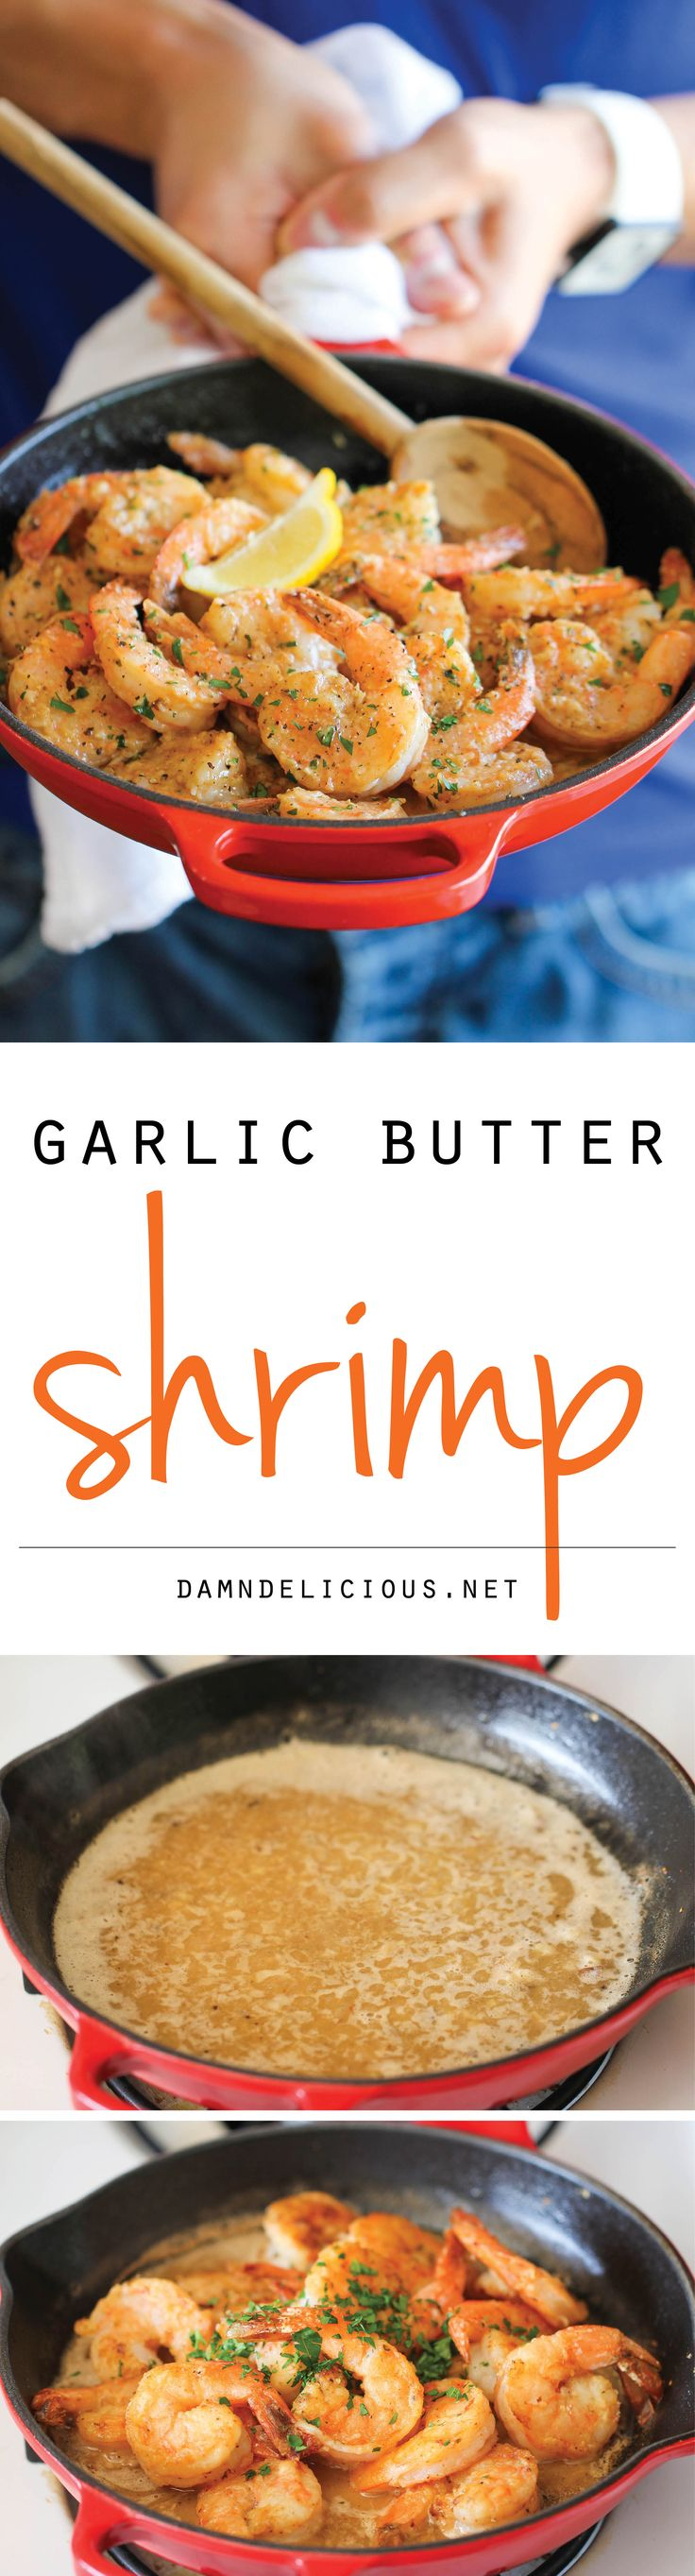 Garlic Butter Shrimp - An amazing flavor combination of garlicky buttery goodness - so elegant and easy to make in 20 min or less!  lowcarb shared on facebook.com